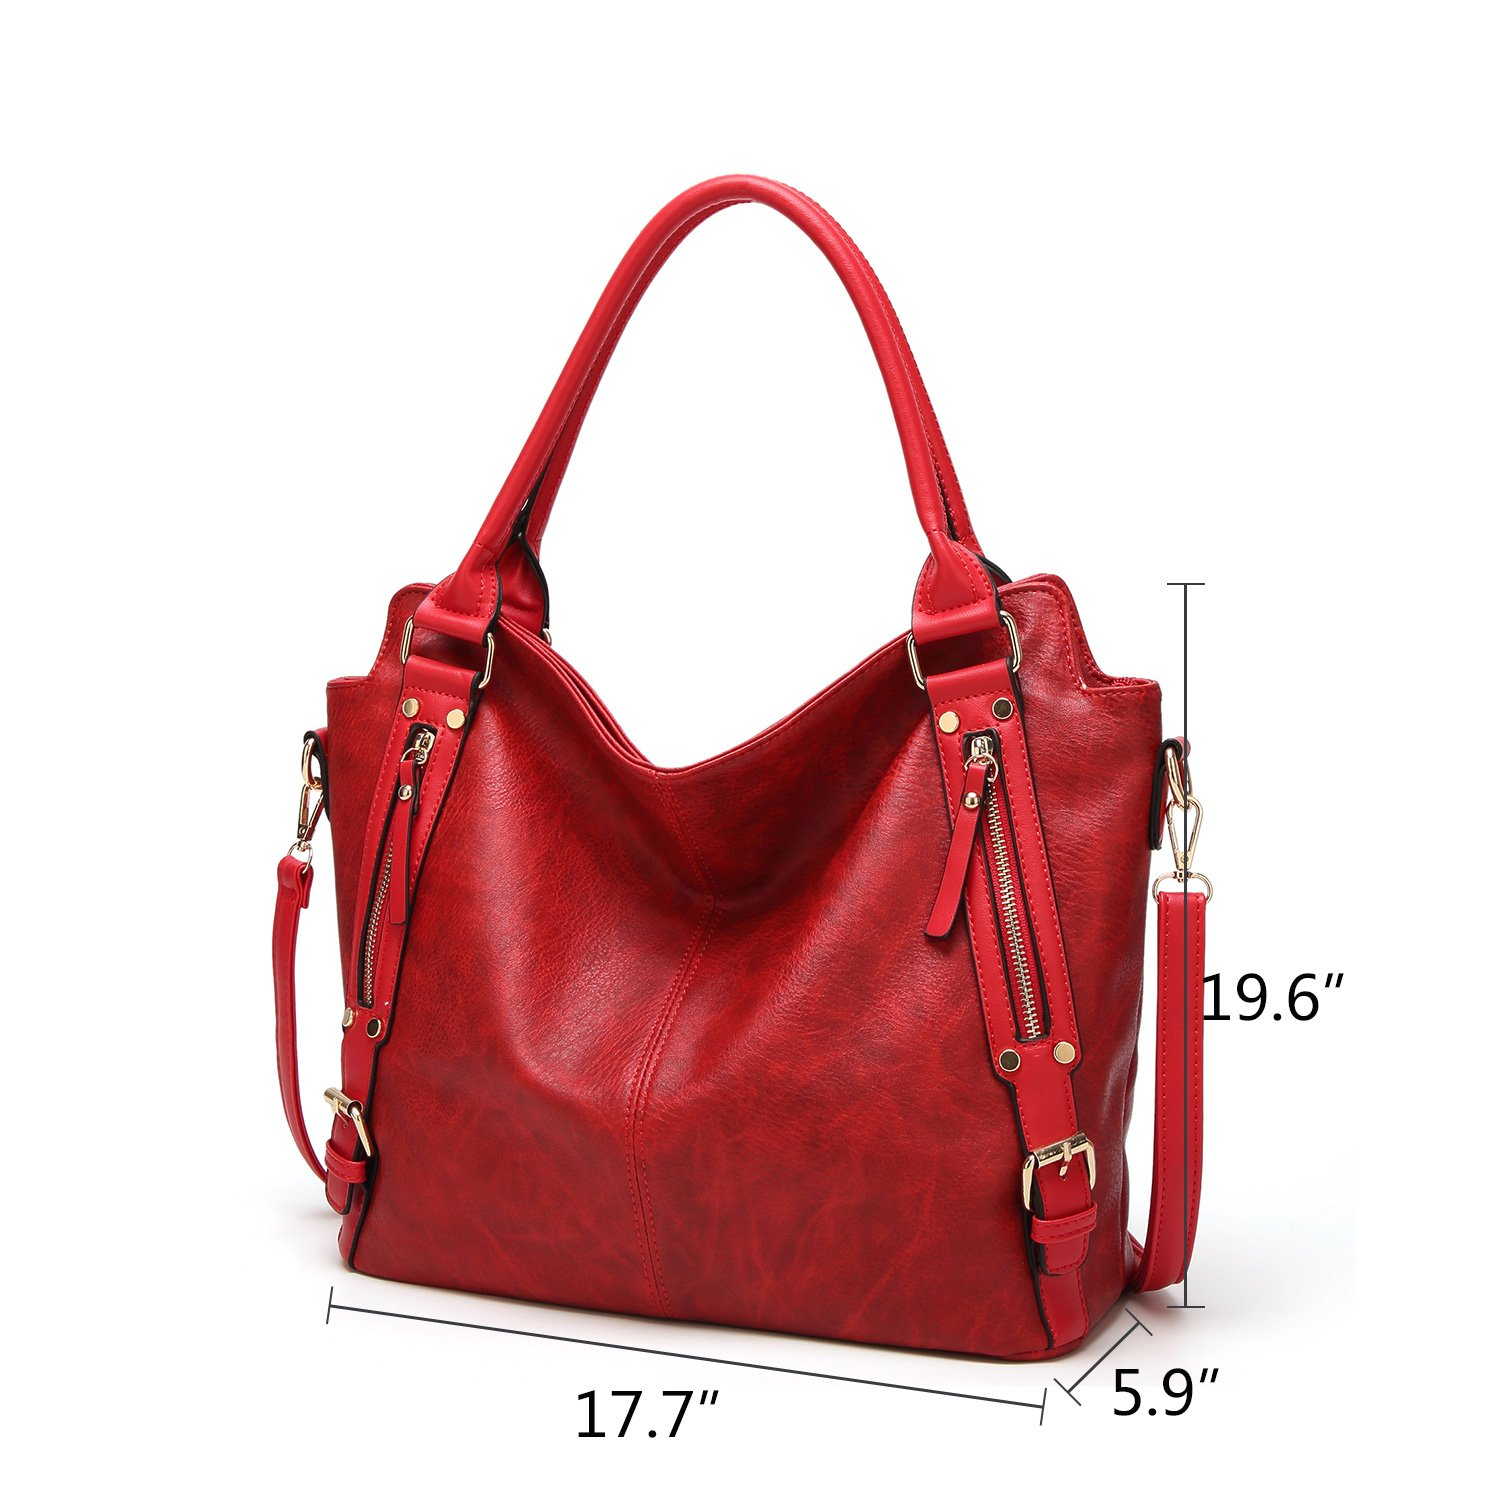 a8bbd6e055c1 Amazon.com: NOTAG Tote Handbags PU Leather Shoulder Bags Fashion ...